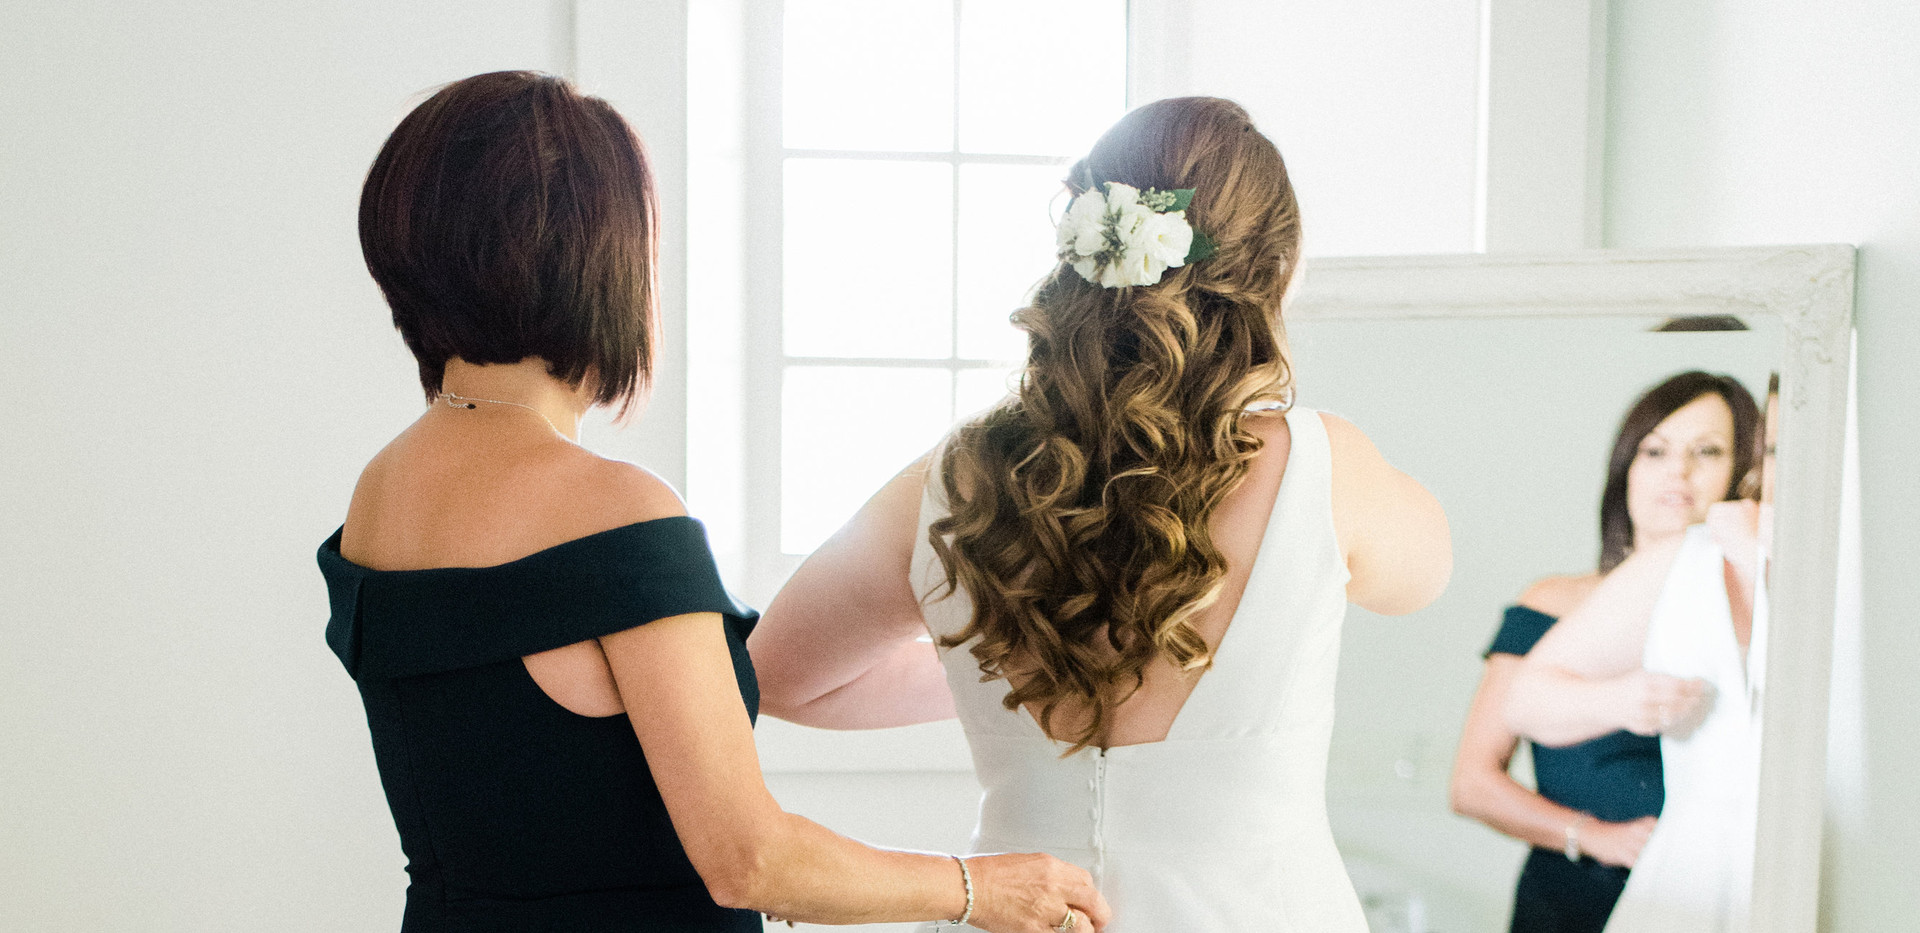 shot from back of bride and mother of the bride looking at full length mirror in bridal suite